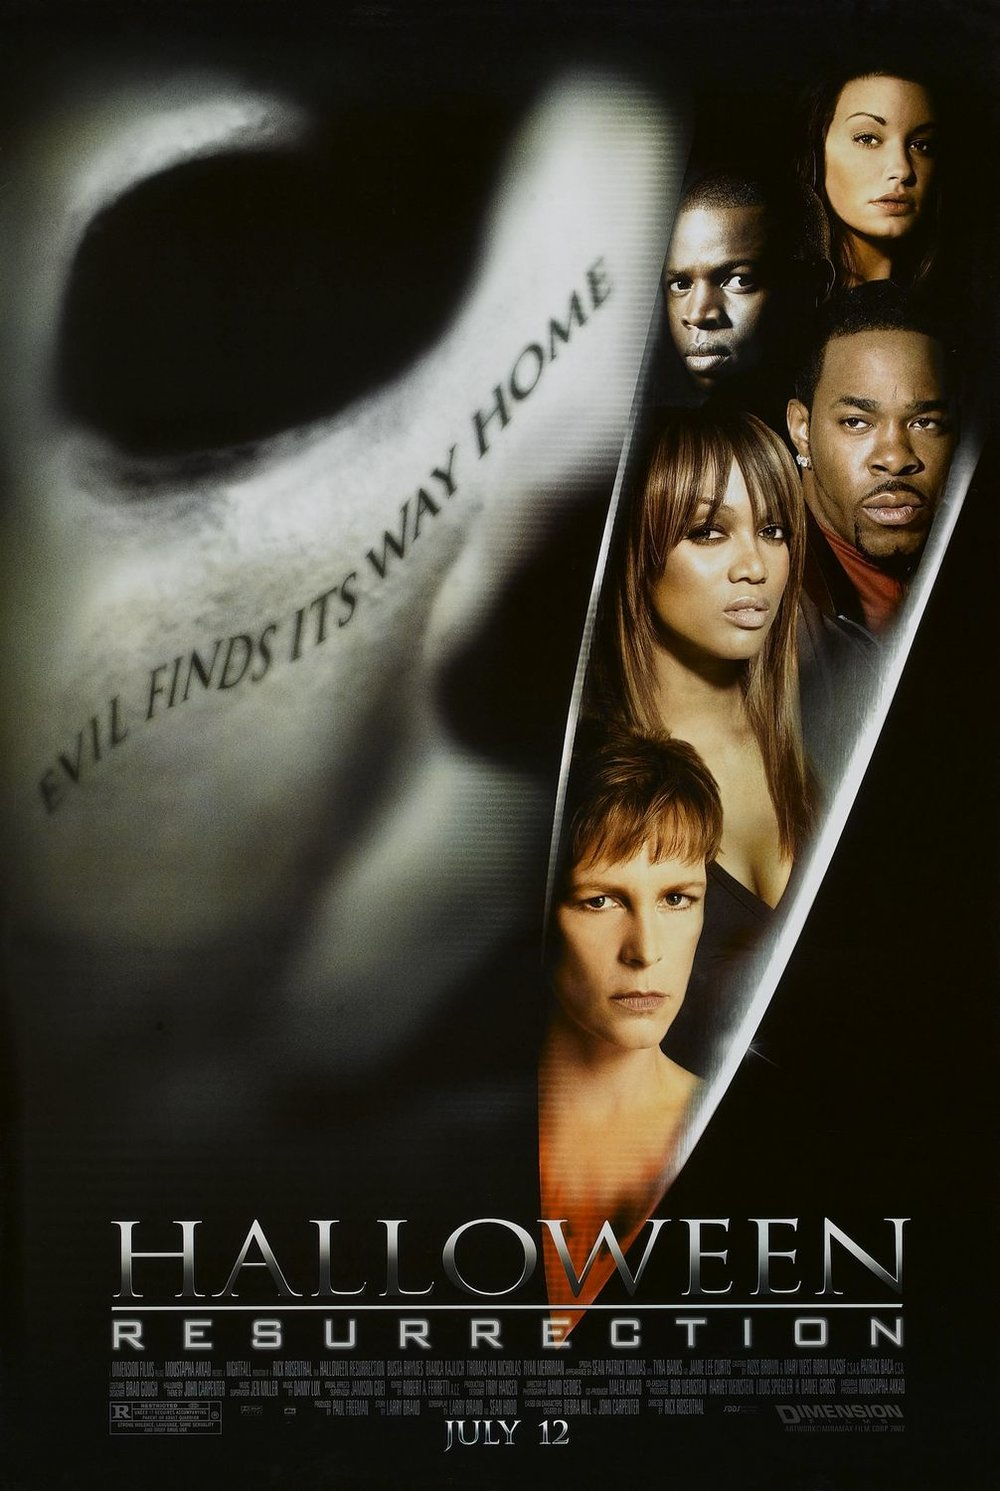 """Halloween Resurrection - Despite having Halloween II director Rick Rosenthal at the helm, Halloween Resurrection ended up being a trainwreck. I don't know any self-respecting Halloween fan that was happy with this movie, its terrible plot, and even worse acting. People trash Halloween III and say it's """"not part of the series"""", but let's be real here, this movie is the one that deserves that distinction."""